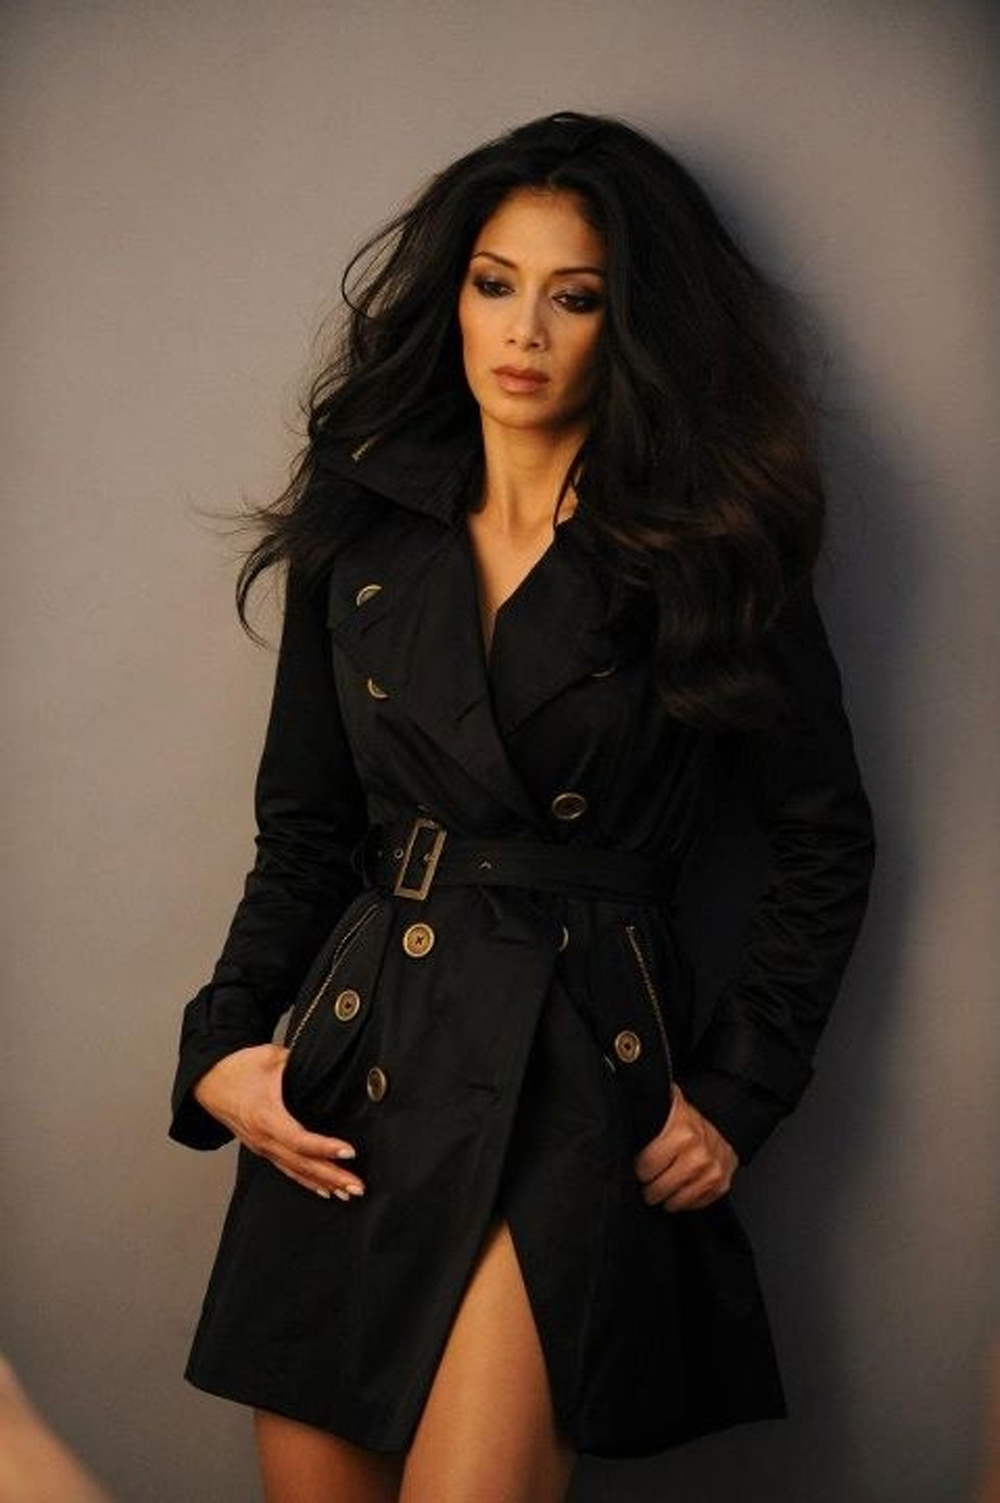 Nicole Scherzinger Long Curly Hairstyles 06